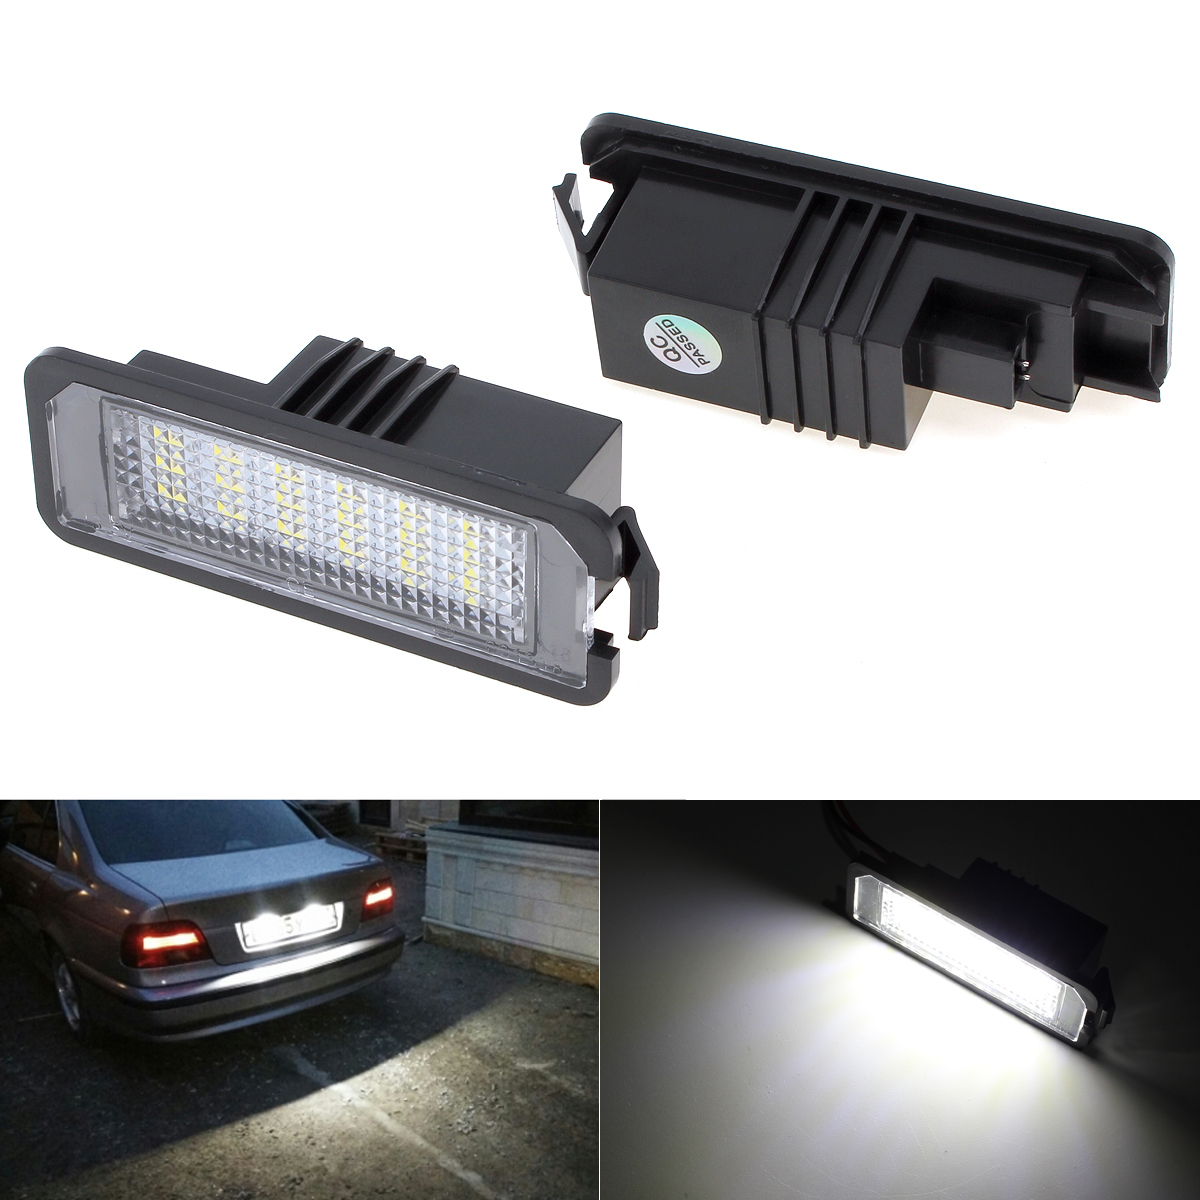 2Pcs LED License Plate Lights SMD3528 6000K Number Plate Light For BMW E82 E88 E90 E92 E93 E39 E60 Sedan M5 E70 X5 E71 E72 X6 2 x led number license plate lamps obc error free 24 led for bmw e39 e80 e82 e90 e91 e92 e60 e61 e70 e71